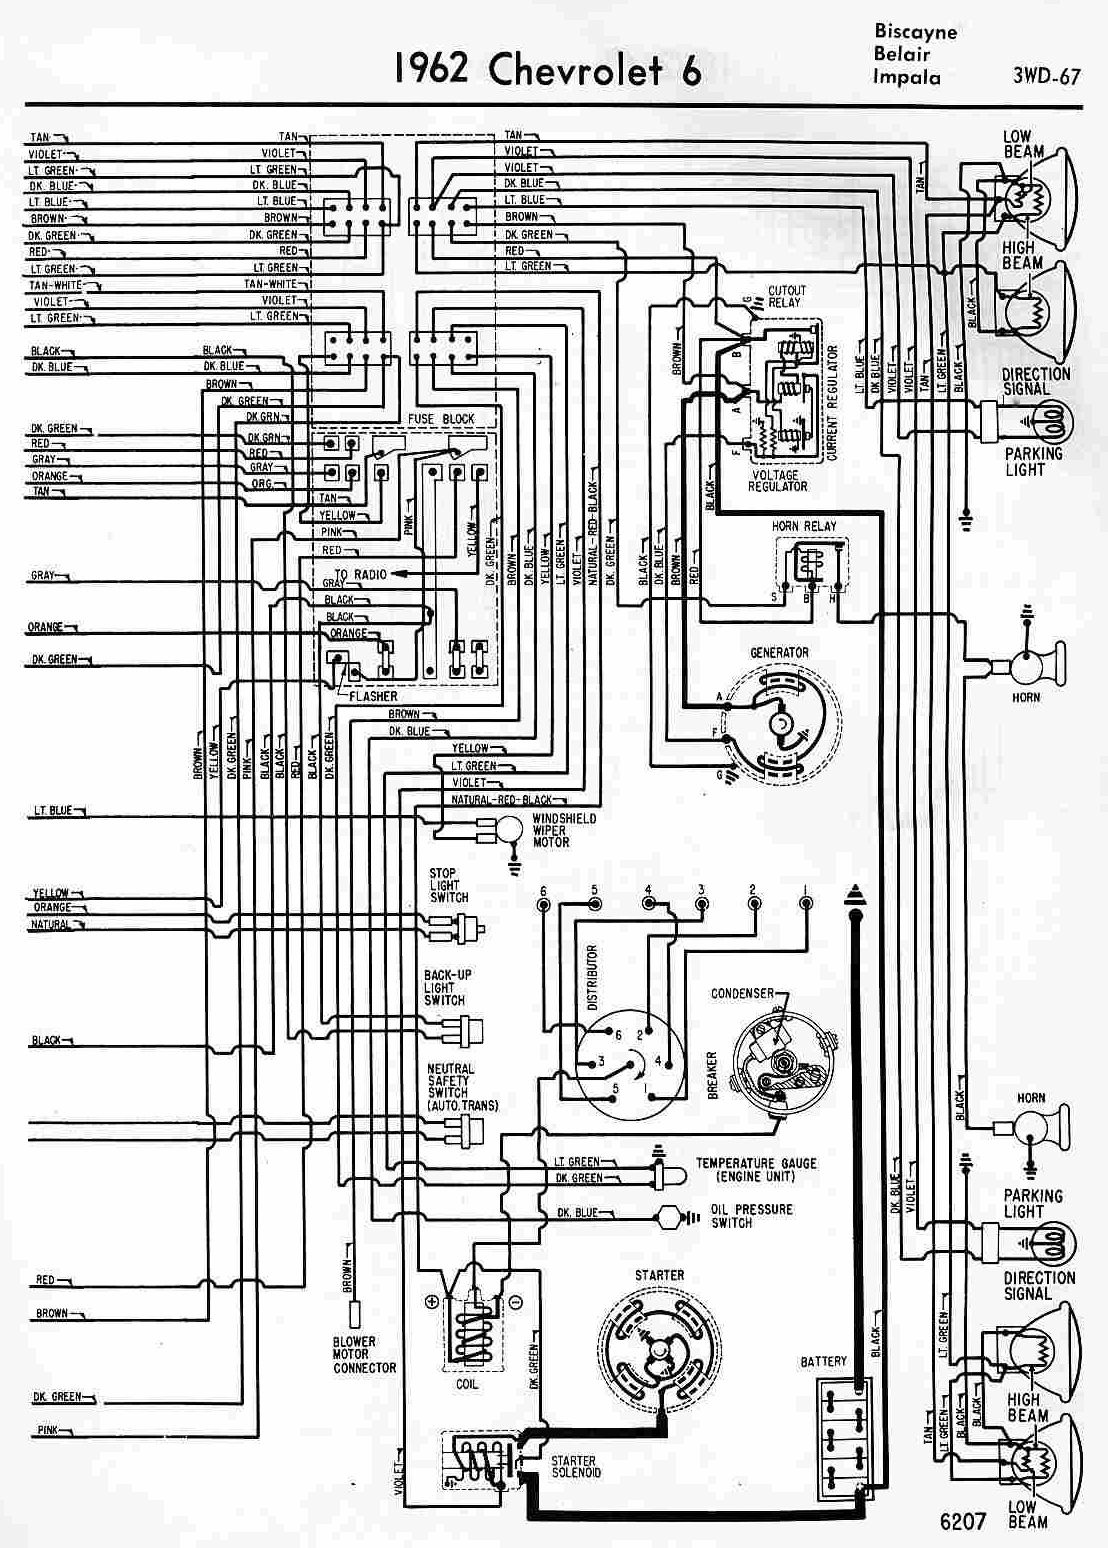 1968 chevy impala wiring diagram schematic wiring diagram third level1966 impala  wiring diagram free download schematic